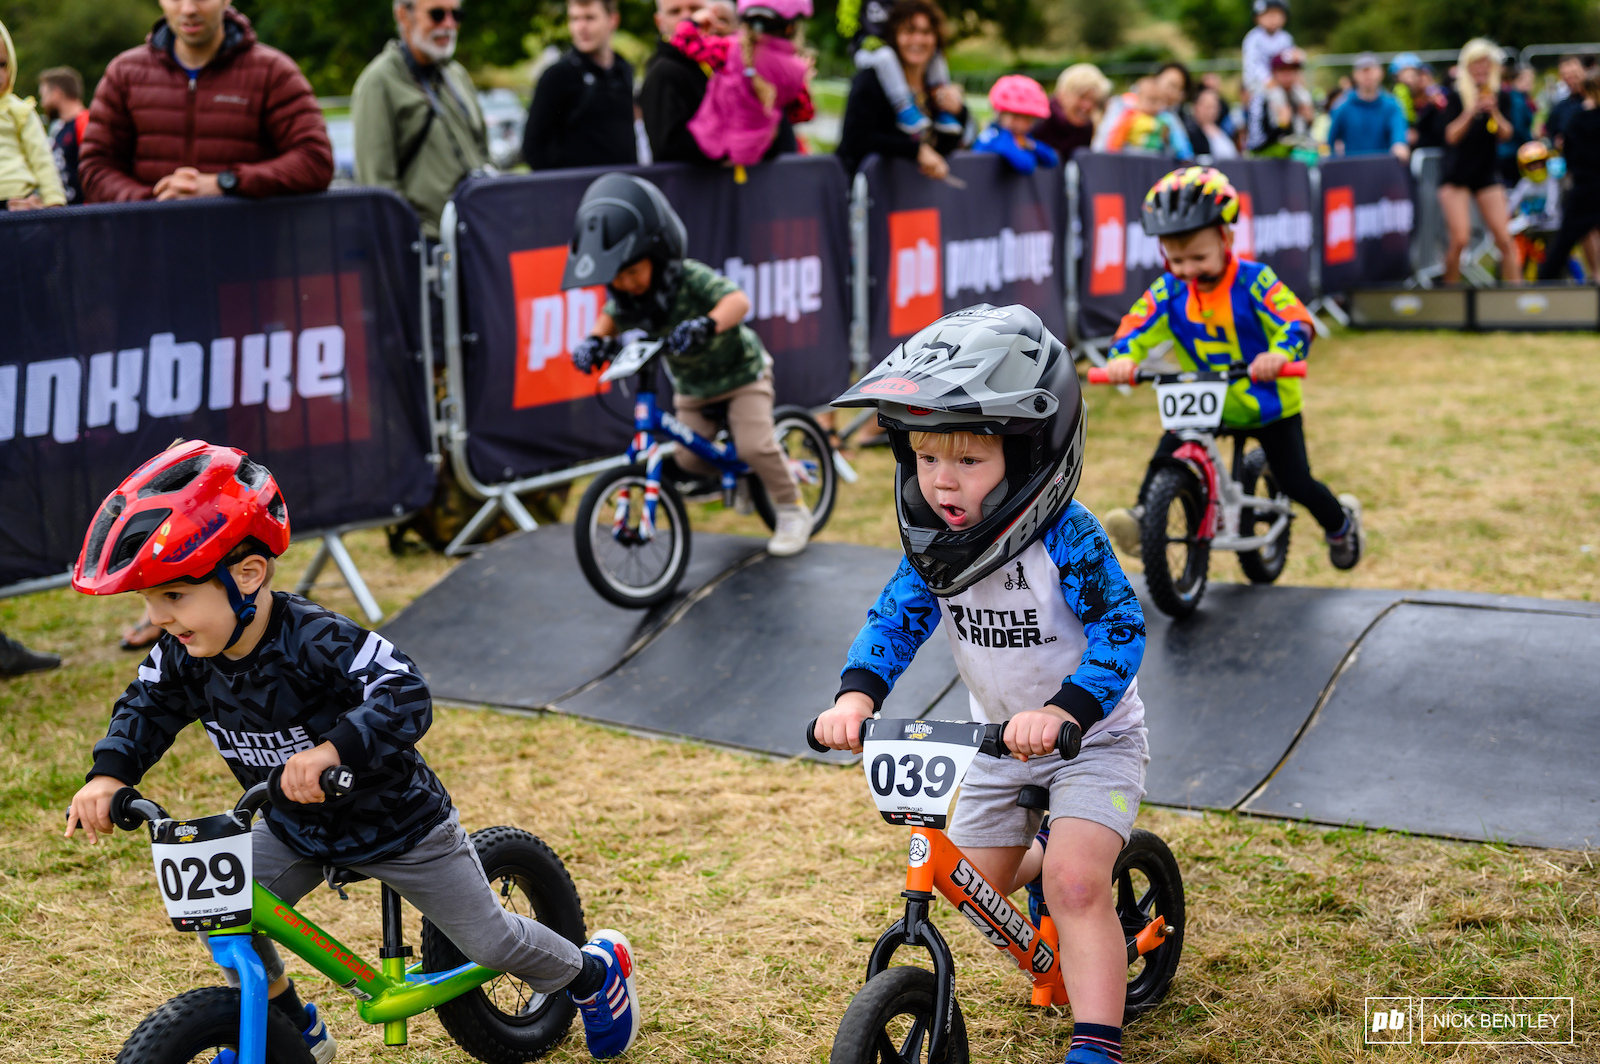 There were some close races in the balance bike 4X